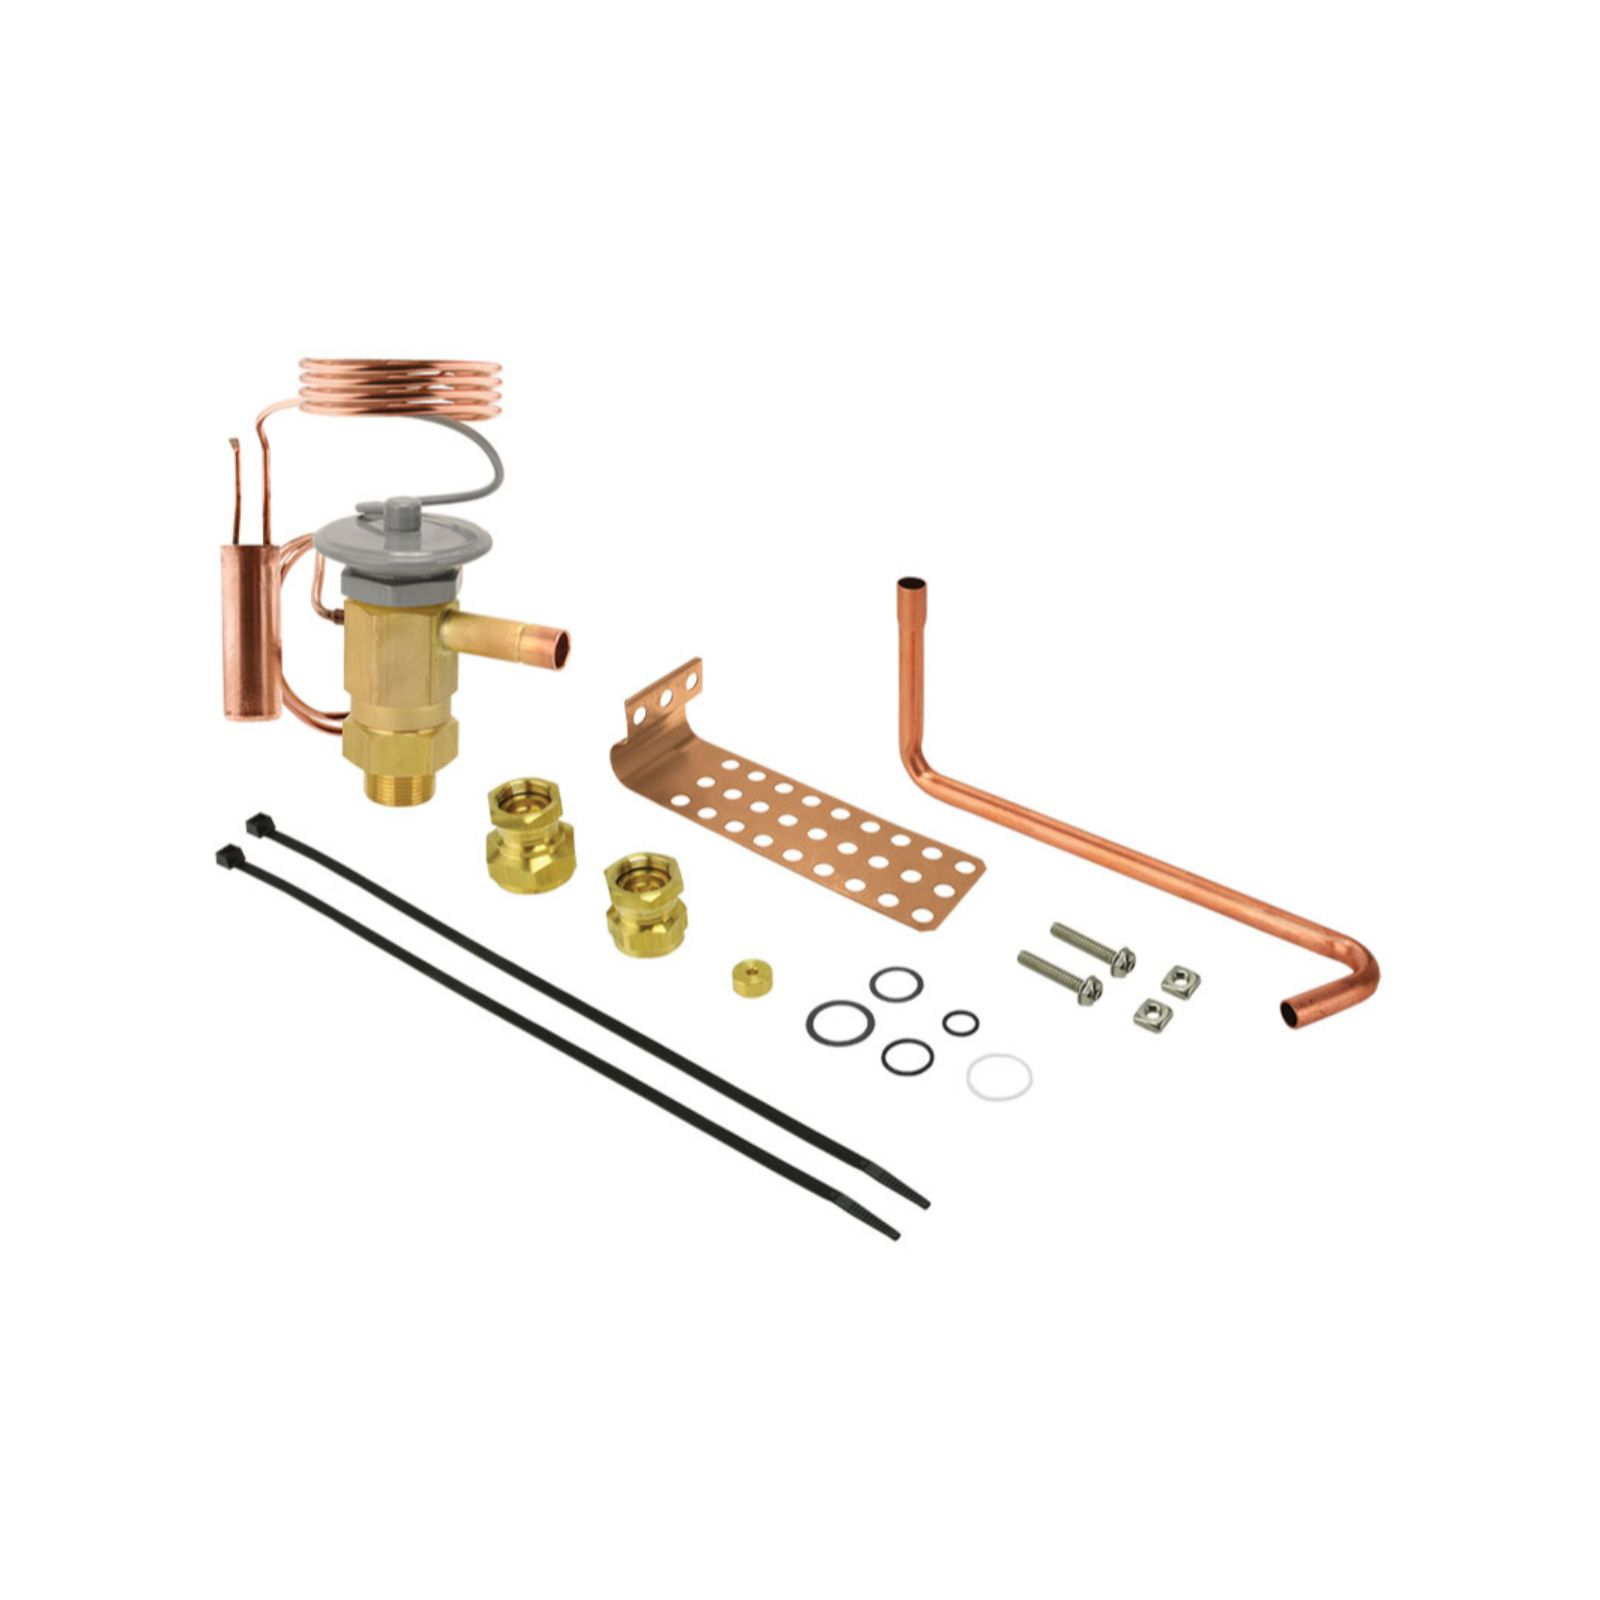 Rheem Pd619064 Expansion Valve Kit Txv 1439973210625 Diagram